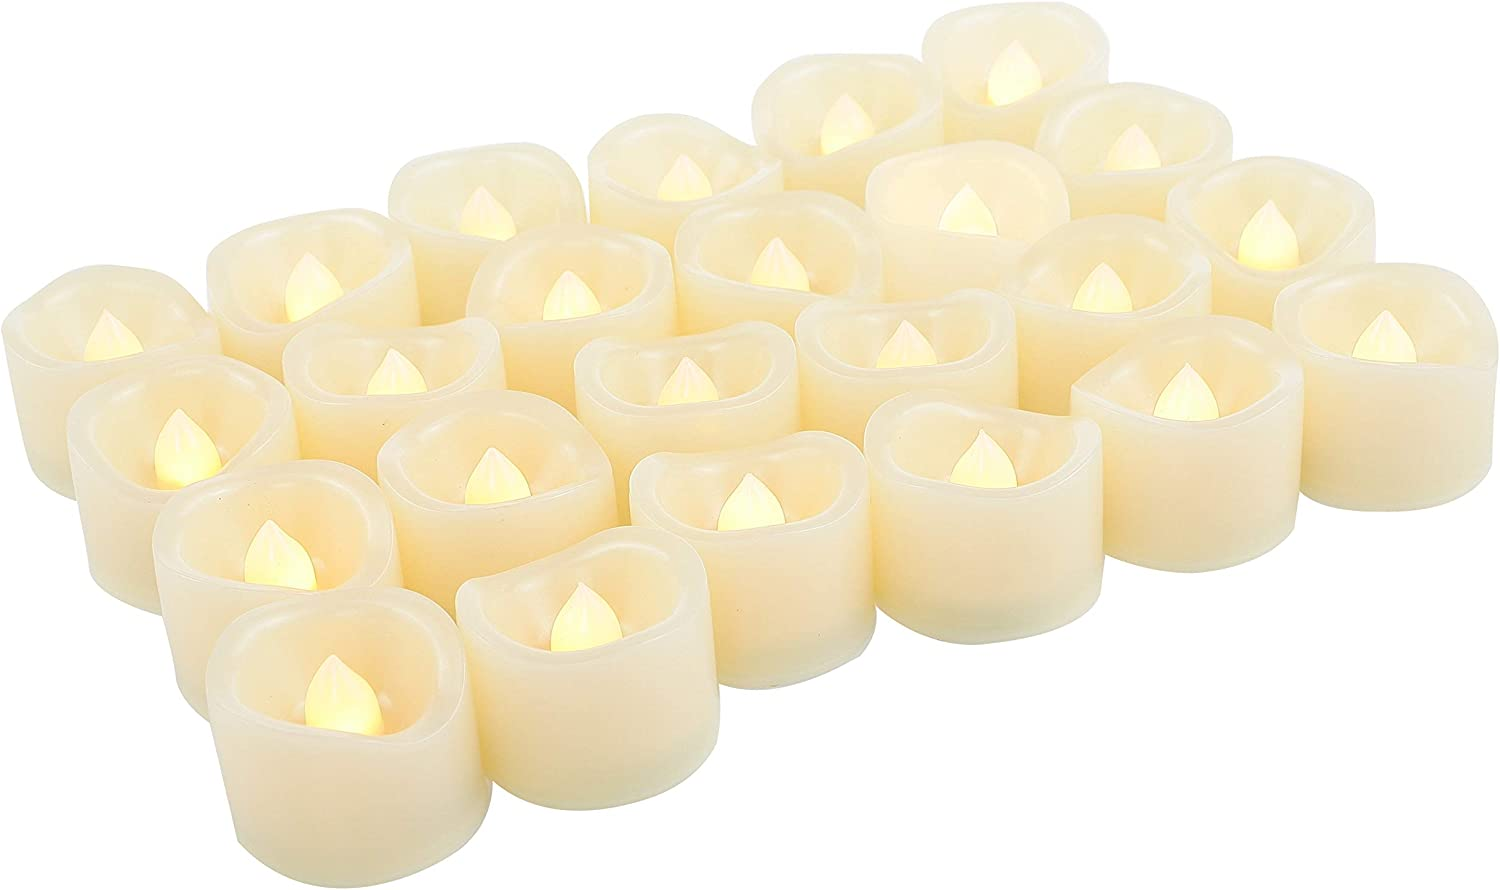 24 Pack LED Tea Lights Battery Operated Flameless Candles Fake Flickering Electric Tealight Candle Set for Home Décor Party Wedding Easter Decorations Batteries Included, Wave Open, Cream White